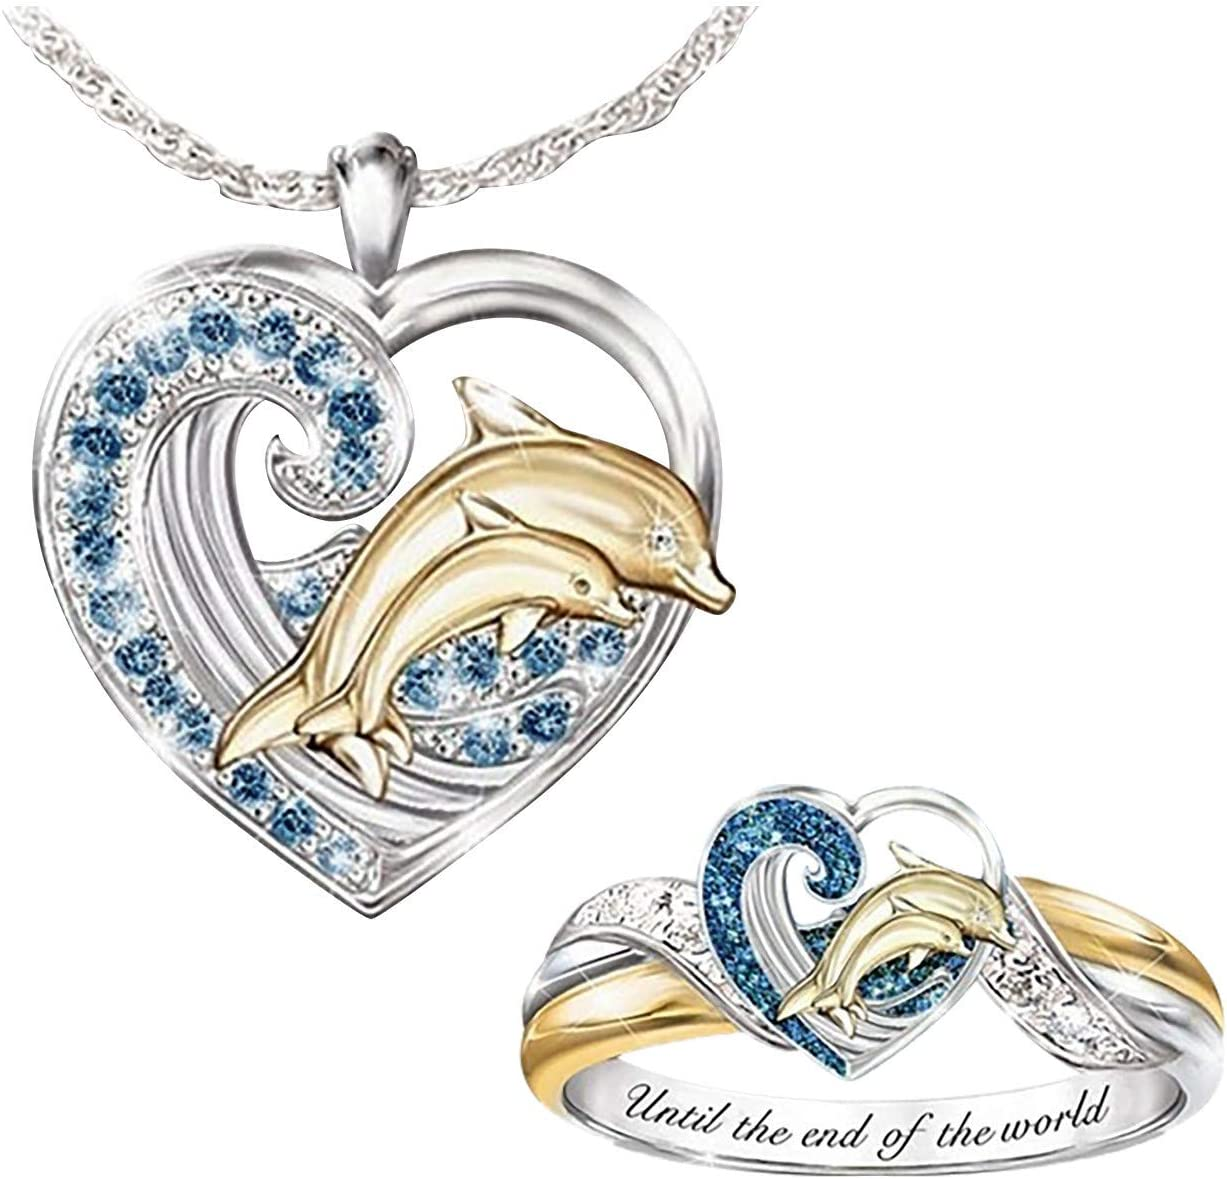 TUU Jewelry Set,Women Creative Couple Love Dolphin Diamond Necklace Ring Set, Gift for Mom, Baby, Lovers, Valentine's Day, Lucky Vintage Dainty Wedding, Ring Size for 5-10